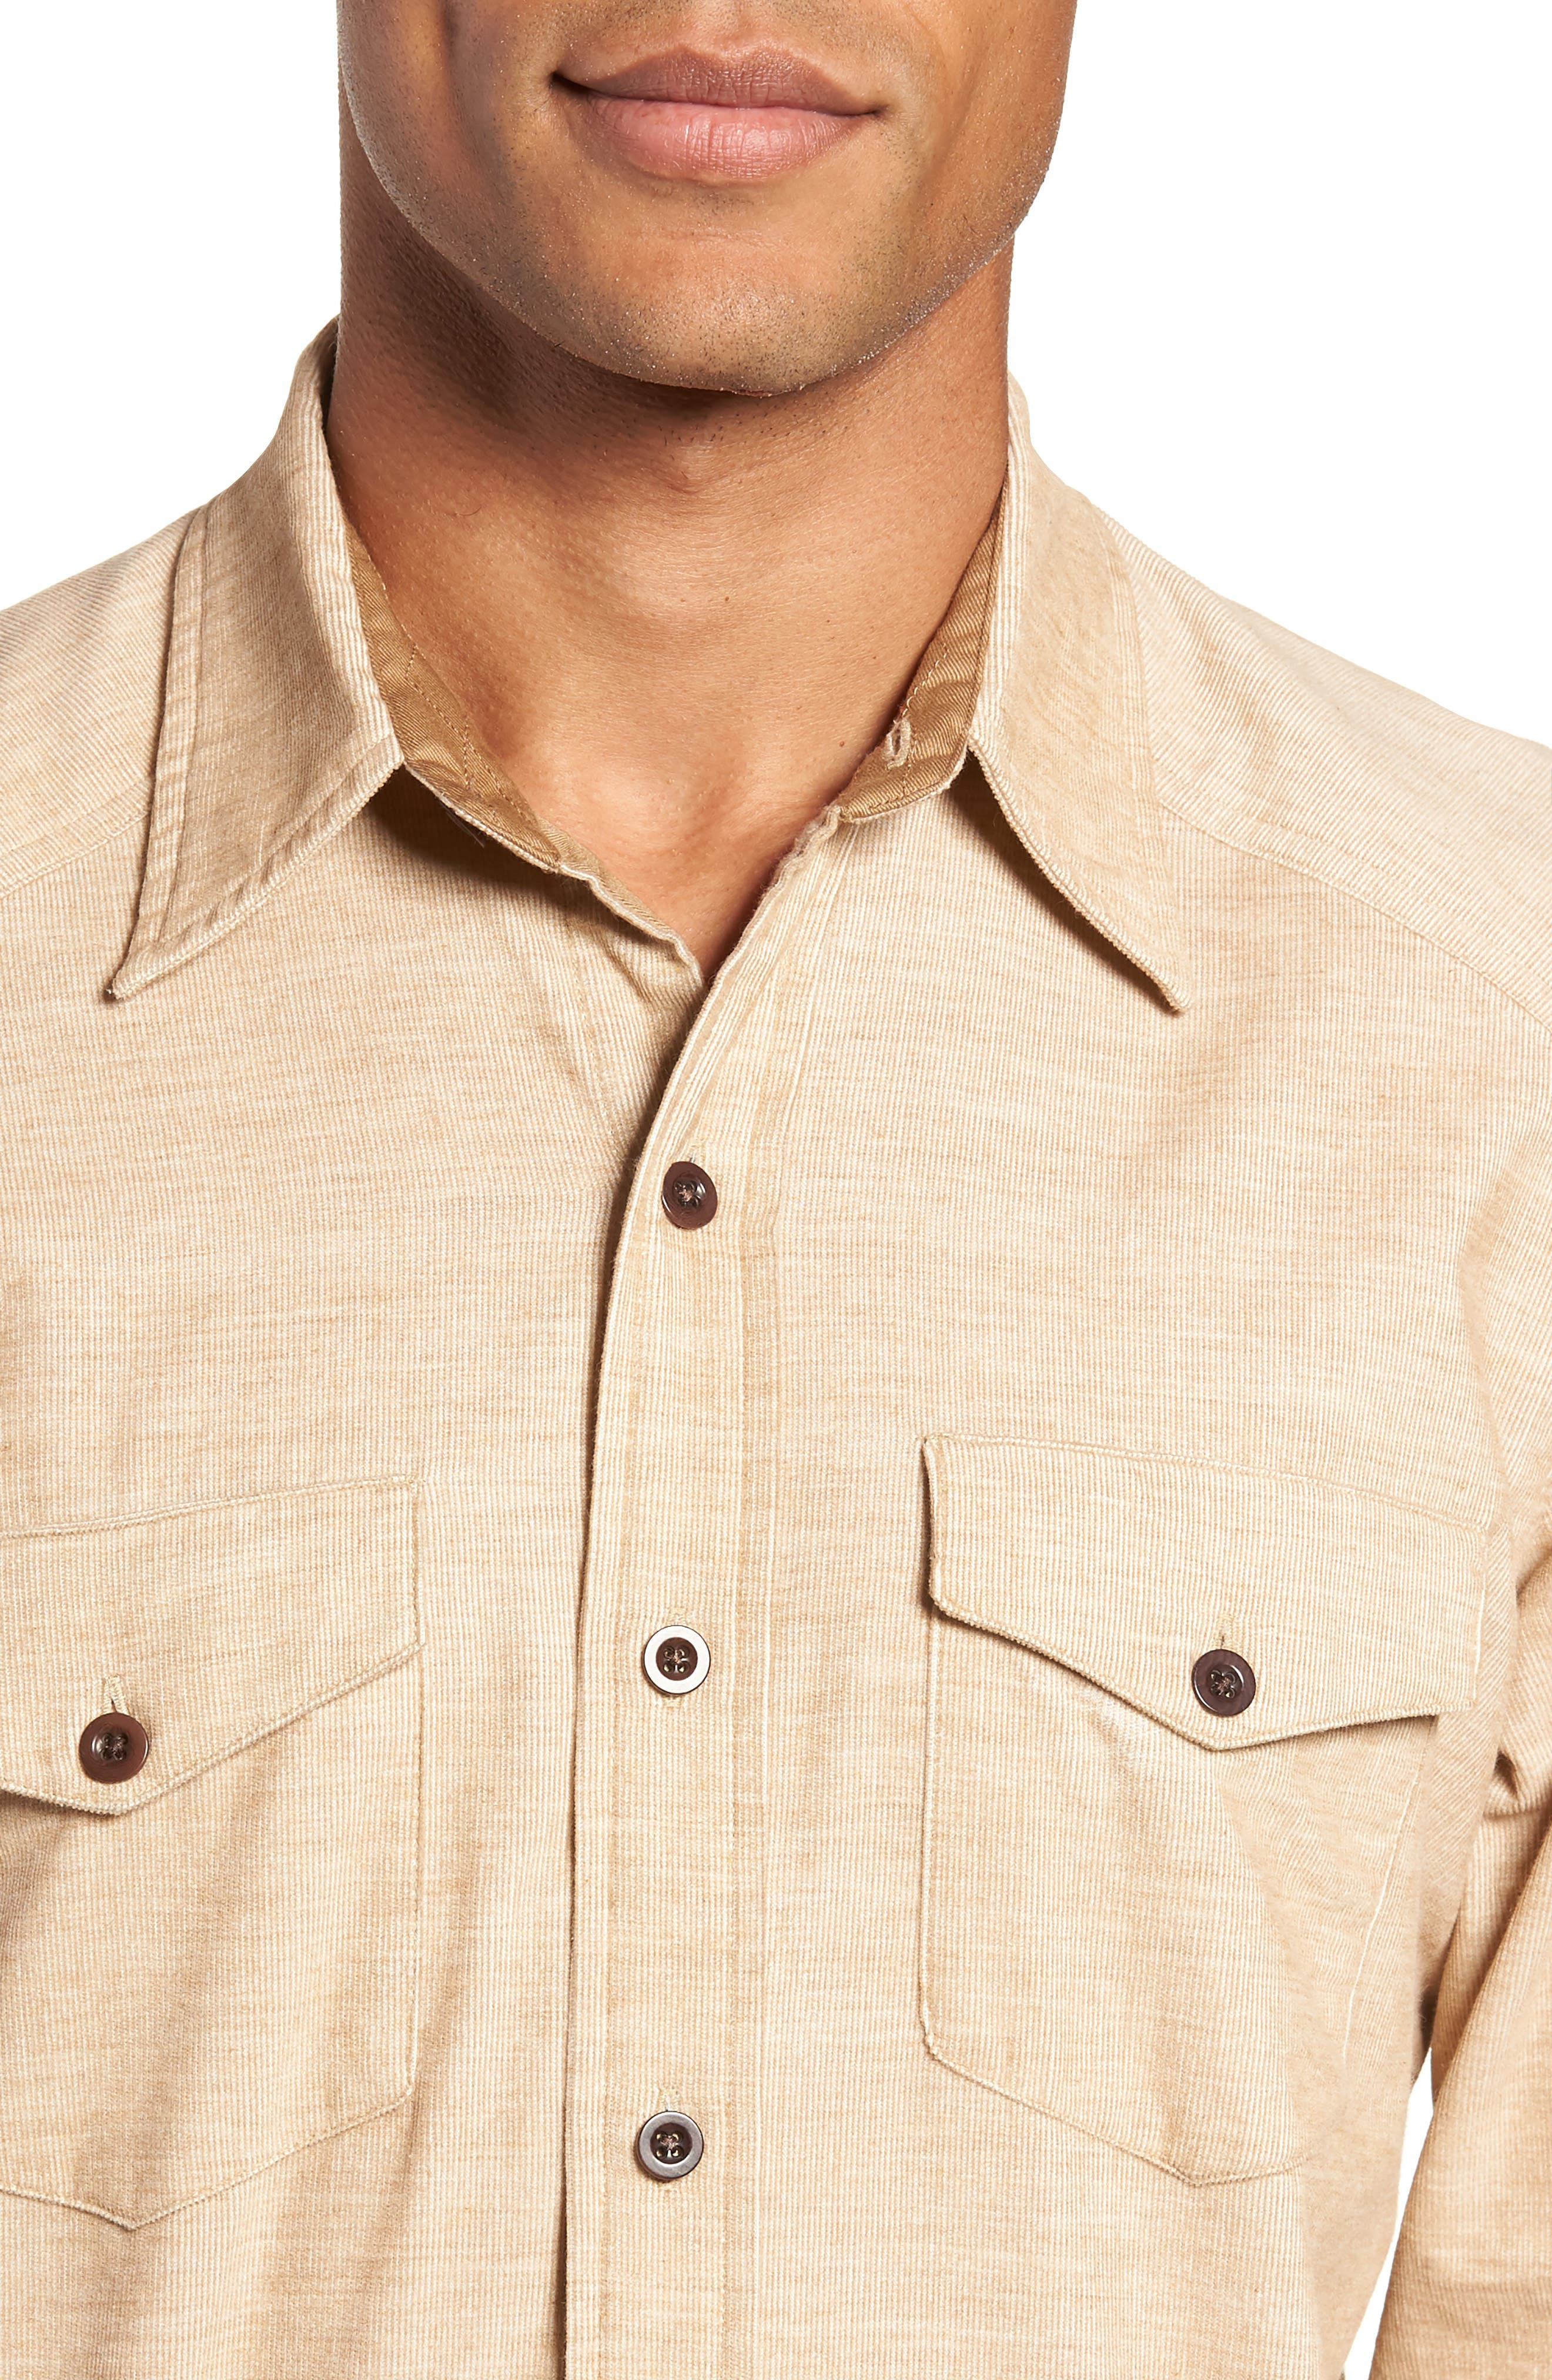 John Addison Engineer Shirt,                             Alternate thumbnail 2, color,                             KHAKI HEATHER